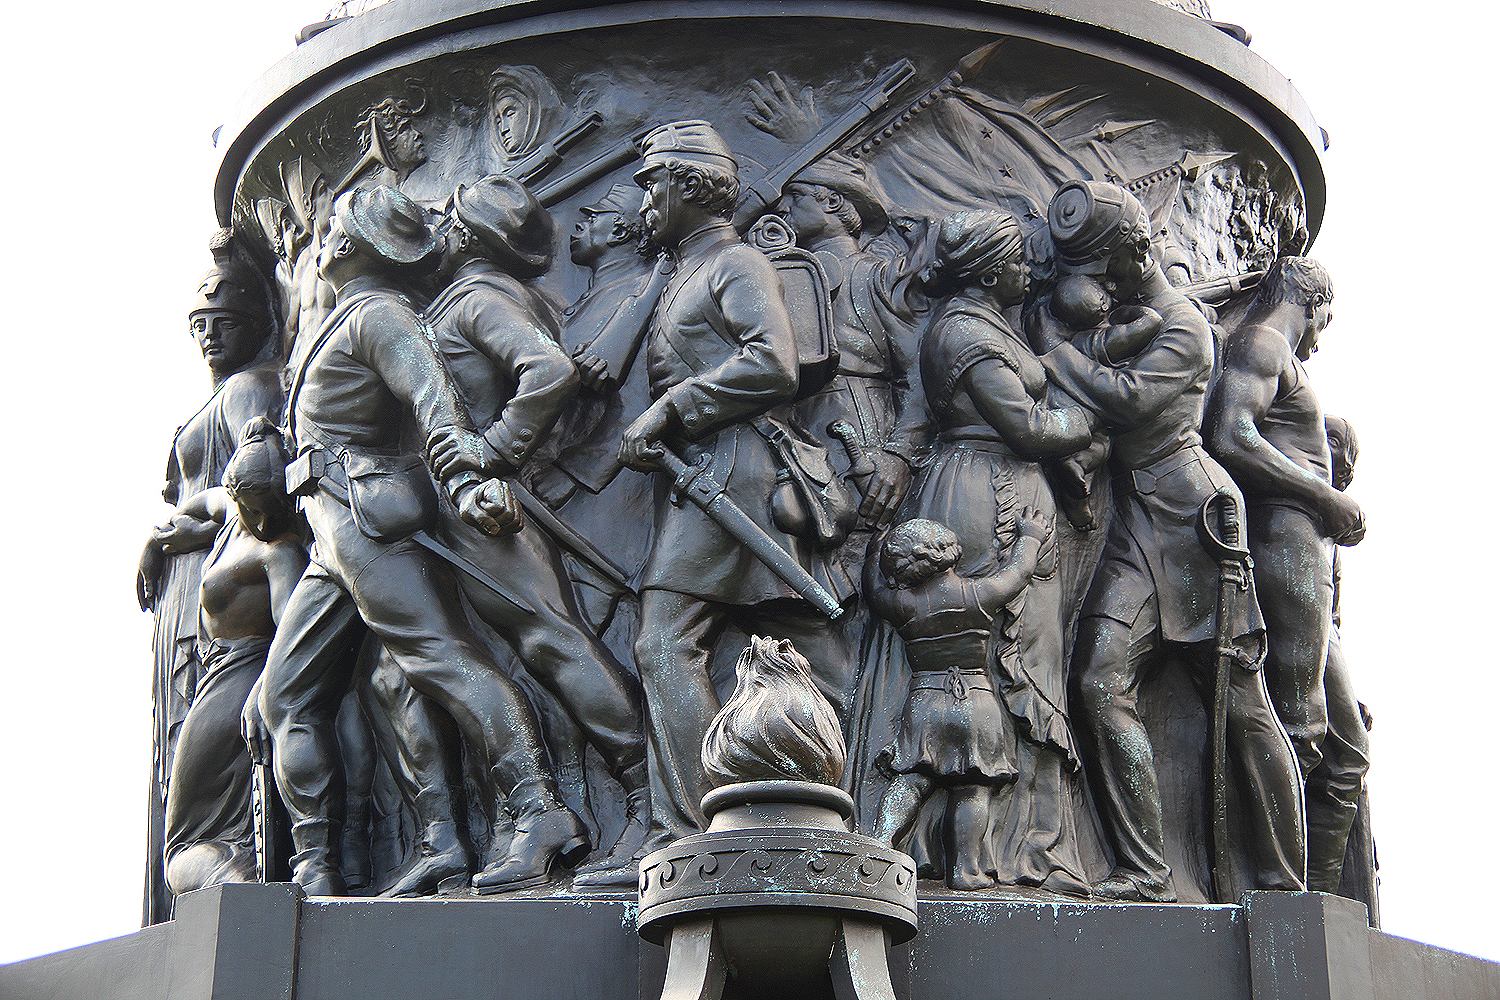 http://upload.wikimedia.org/wikipedia/commons/1/15/Confederate_Monument_-_E_frieze_-_Arlington_National_Cemetery_-_2011.JPG